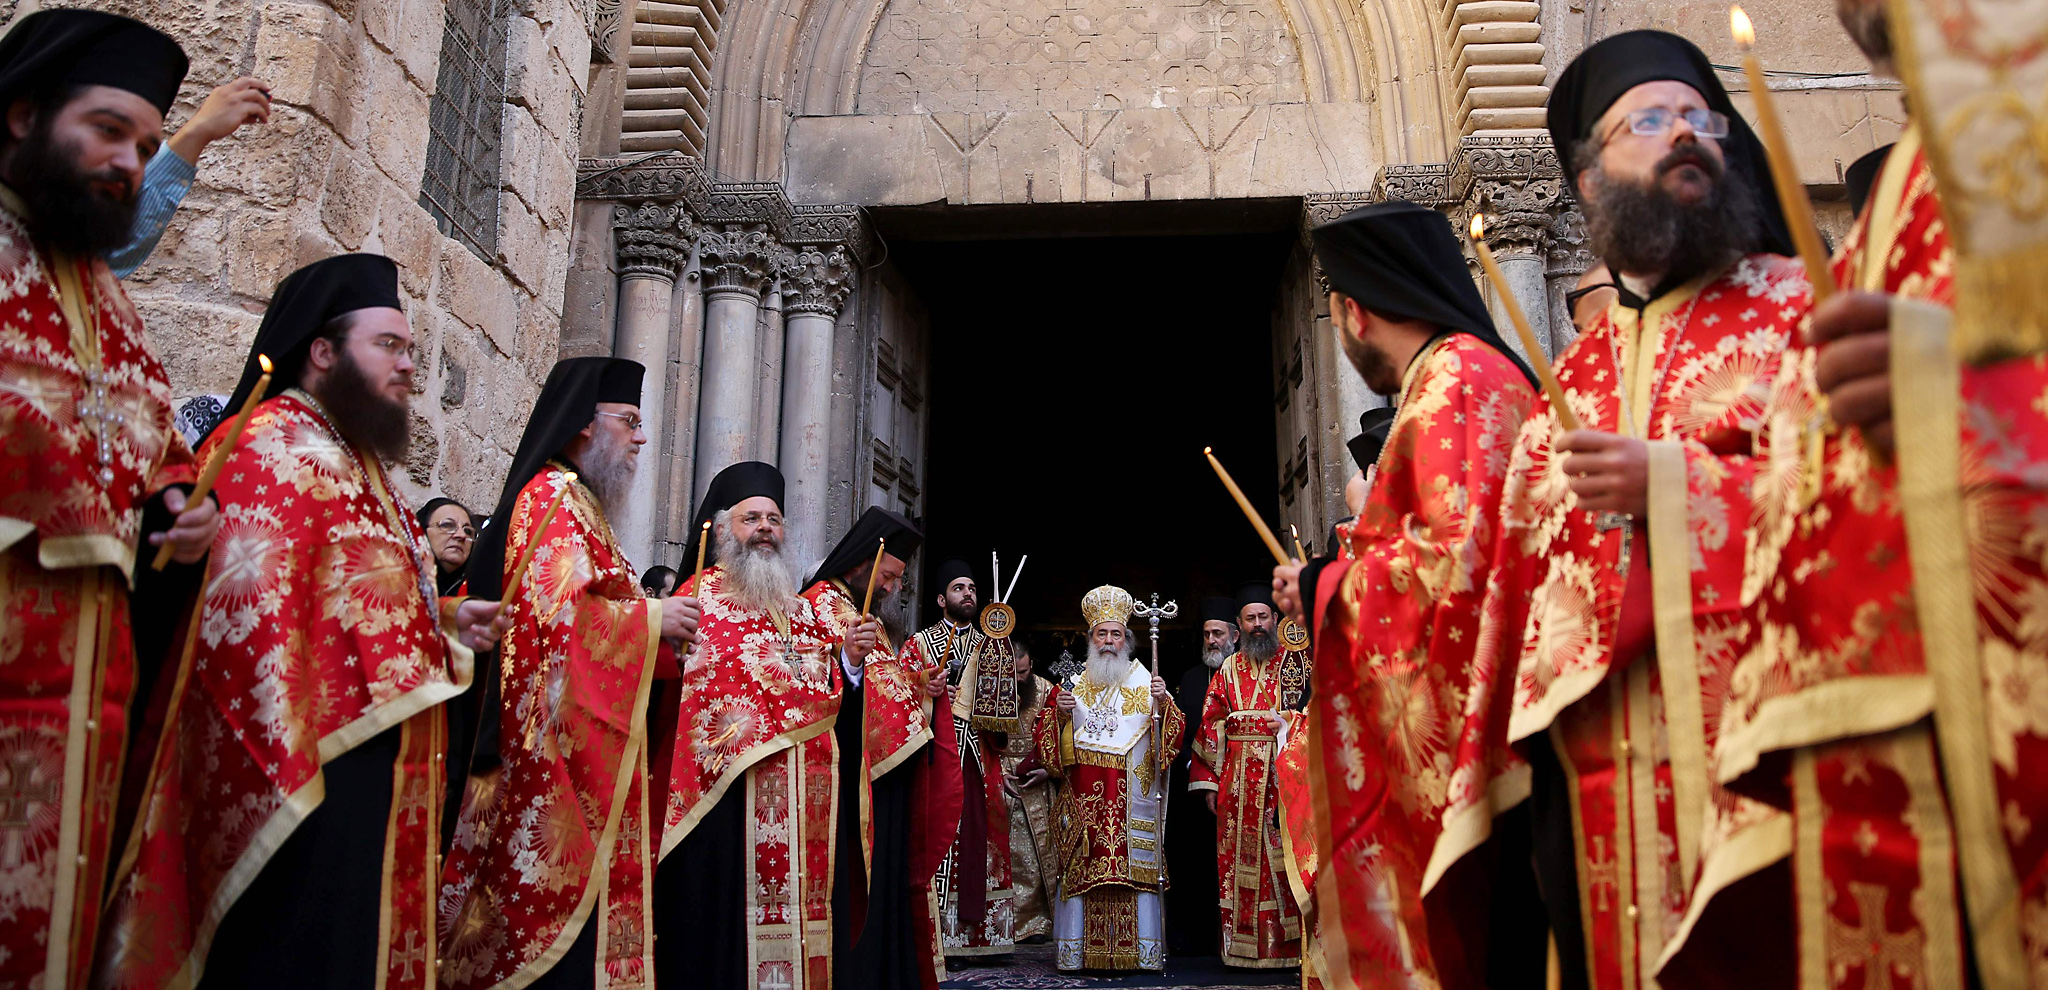 Greek Orthodox Patriarch of Jerusalem Th...Greek Orthodox Patriarch of Jerusalem Theophilos III leads the Washing of the Feet ceremony in front of the Church of the Holy Sepulchre in Jerusalem's Old City on April 28, 2016 as part of the Orthodox Easter celebrations. / AFP PHOTO / GALI TIBBONGALI TIBBOGreek Orthodox Patriarch of Jerusalem Th...Greek Orthodox Patriarch of Jerusalem Theophilos III leads the Washing of the Feet ceremony in front of the Church of the Holy Sepulchre in Jerusalem's Old City on April 28, 2016 as part of the Orthodox Easter celebrations. / AFP PHOTO / GALI TIBBONGALI TIBBON/AFP/Getty ImagesN/AFP/Getty Images